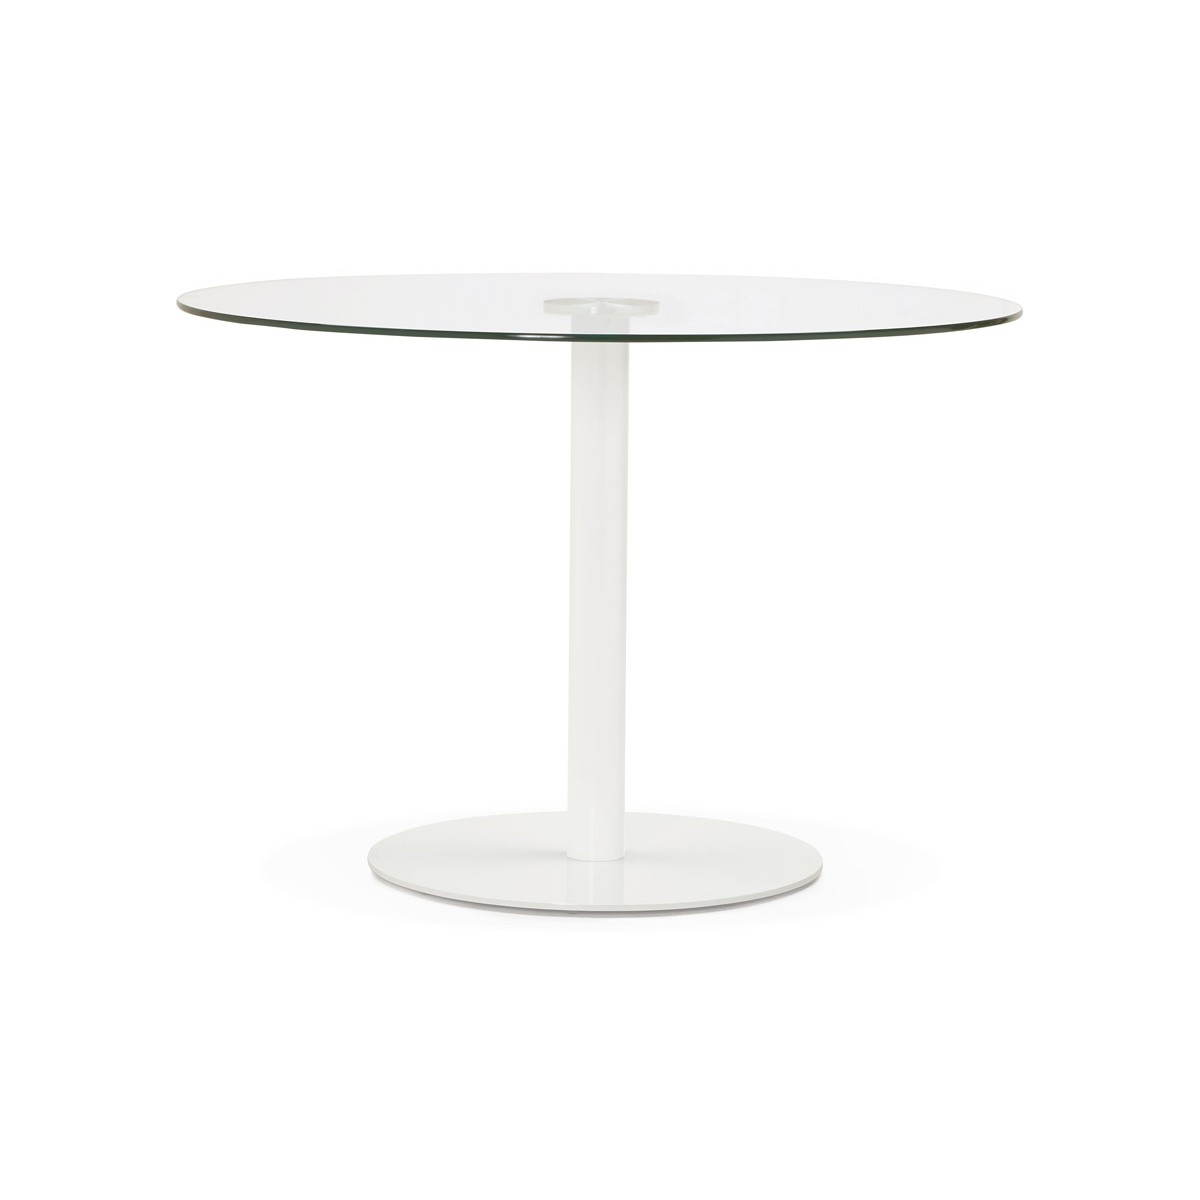 round dining table design elsa in glass and metal o 110 cm transparent amp story 3992